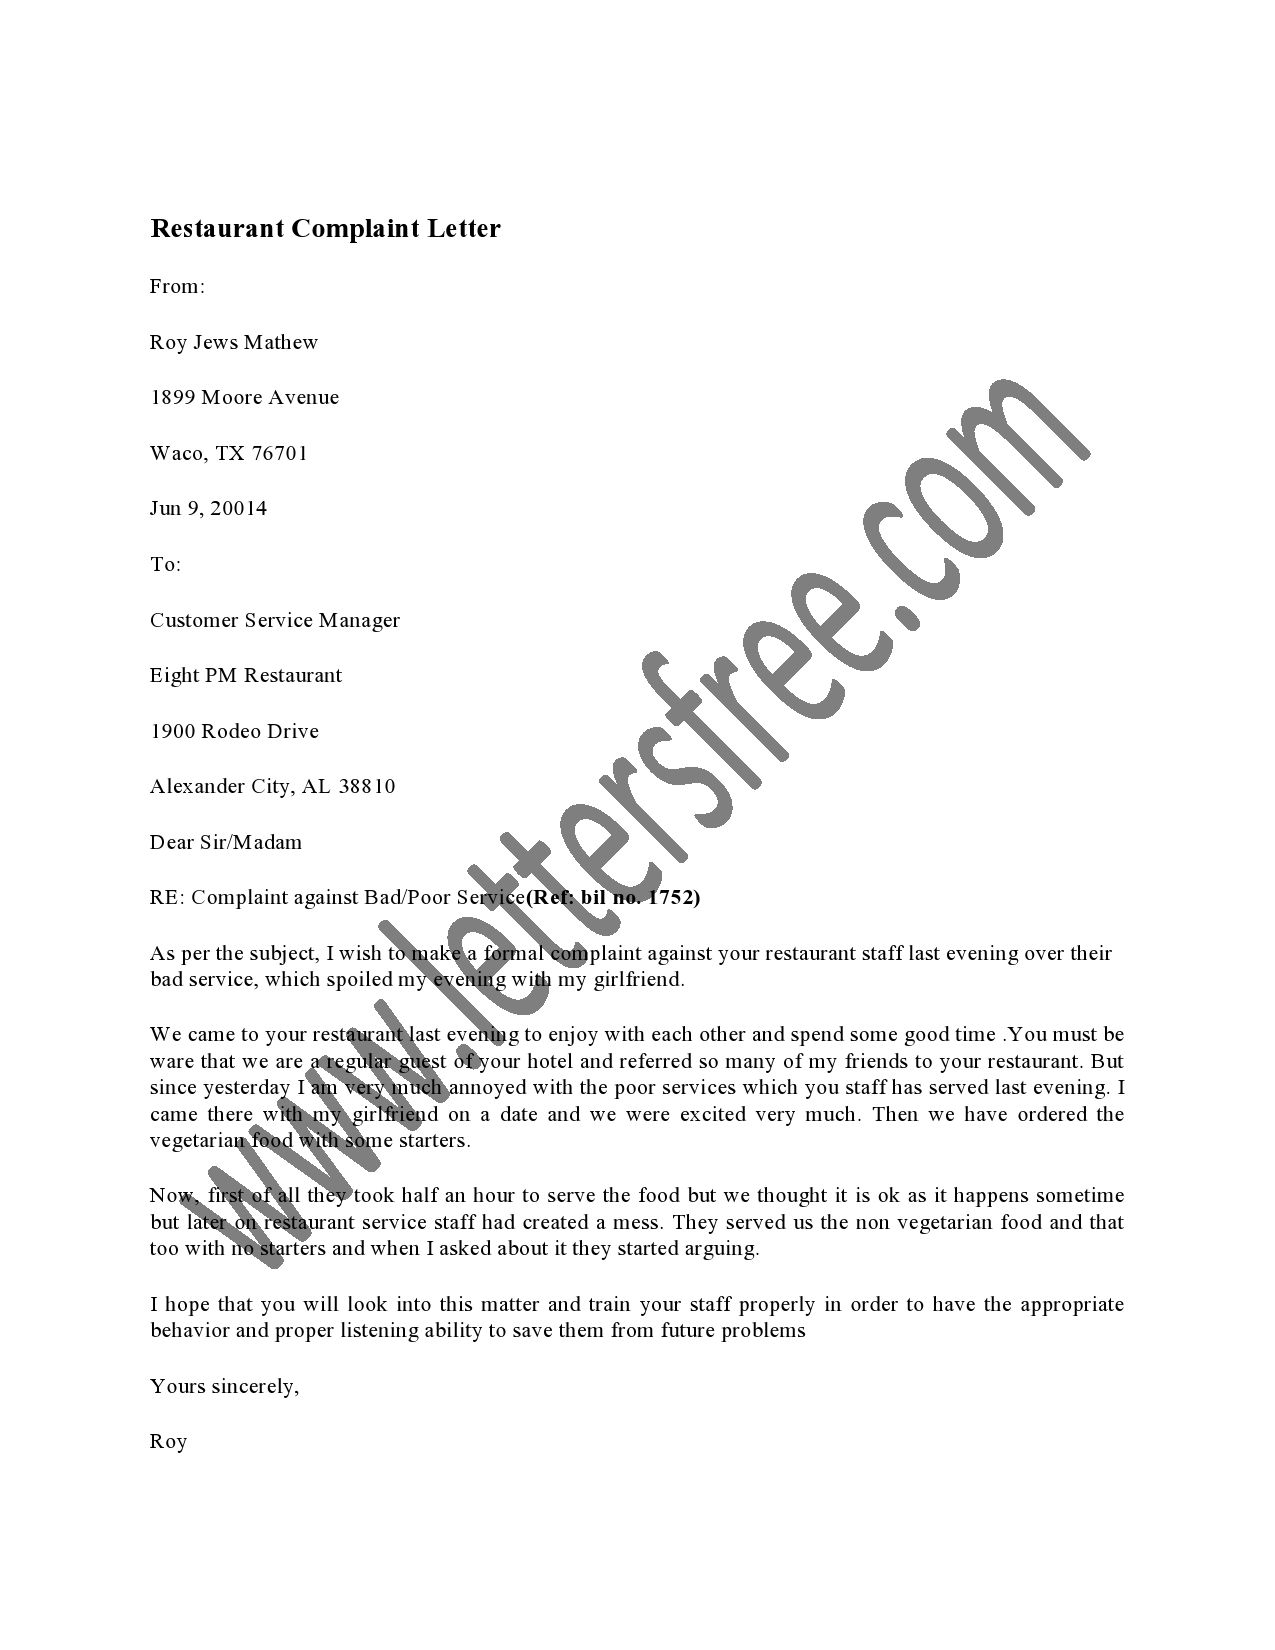 Restaurant complaint letter sample complaint letters pinterest a restaurant complaint letter is usually sent by a frustrated customer of the restaurant who could be the victim of some bad dining services and now writes spiritdancerdesigns